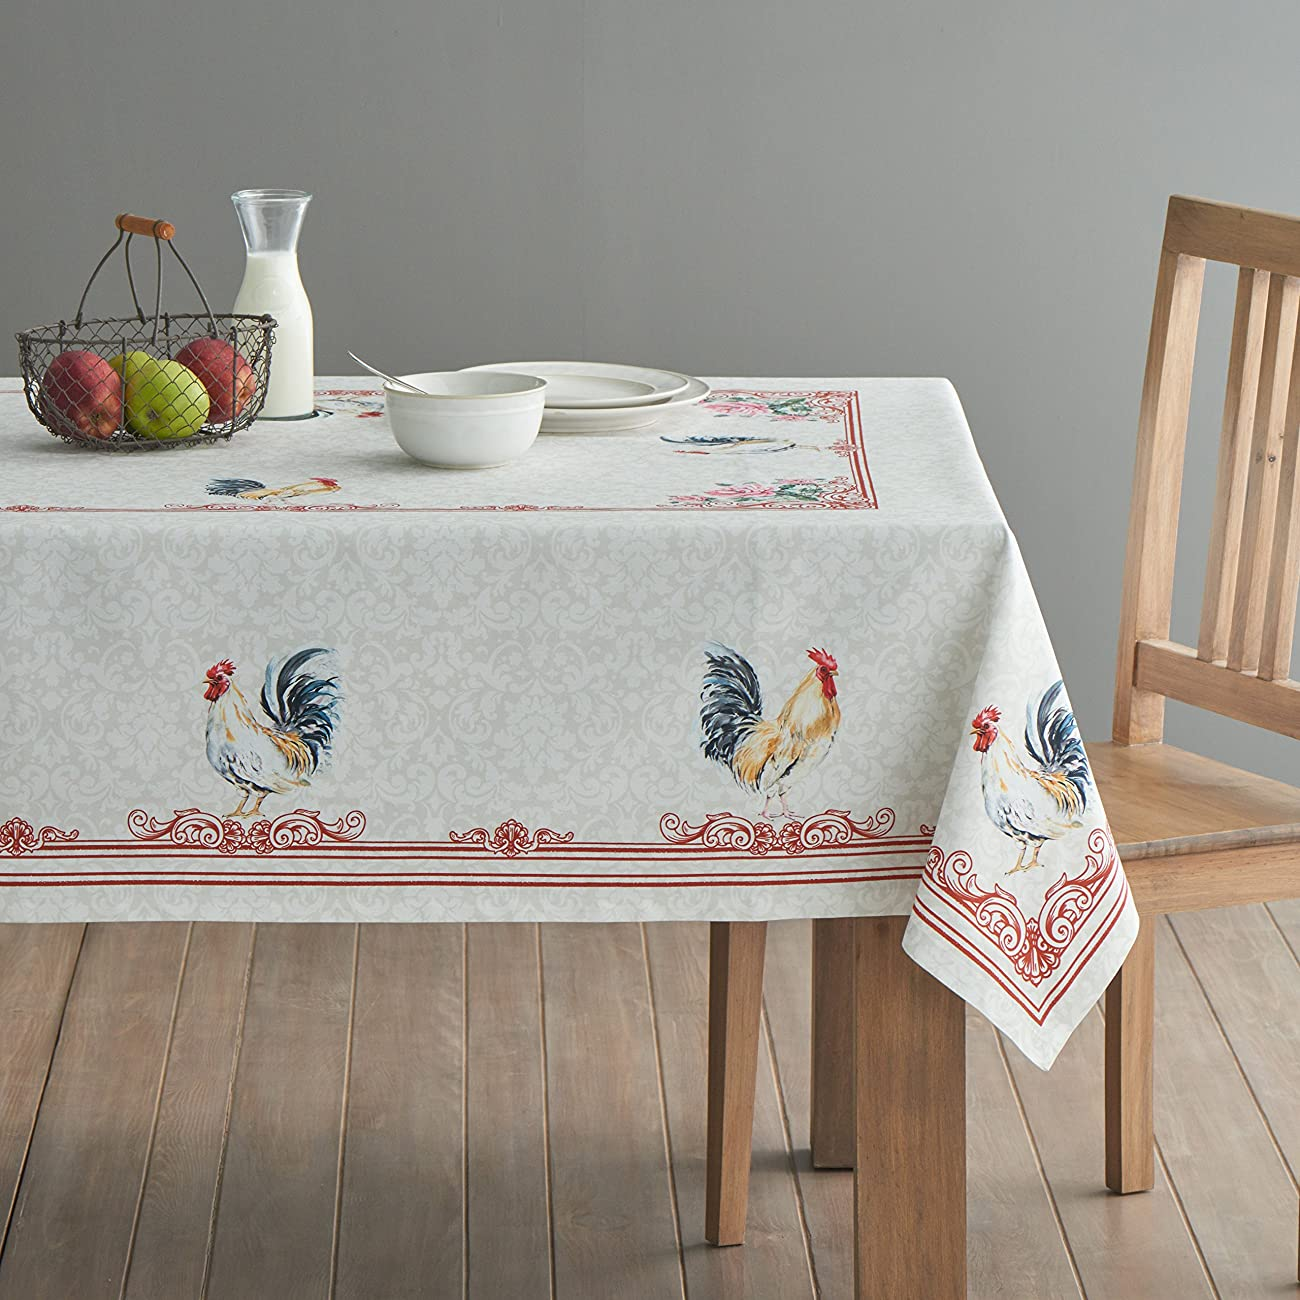 Maison d' Hermine Campagne 100% Cotton Tablecloth 60 - inch by 60 - inch. 1